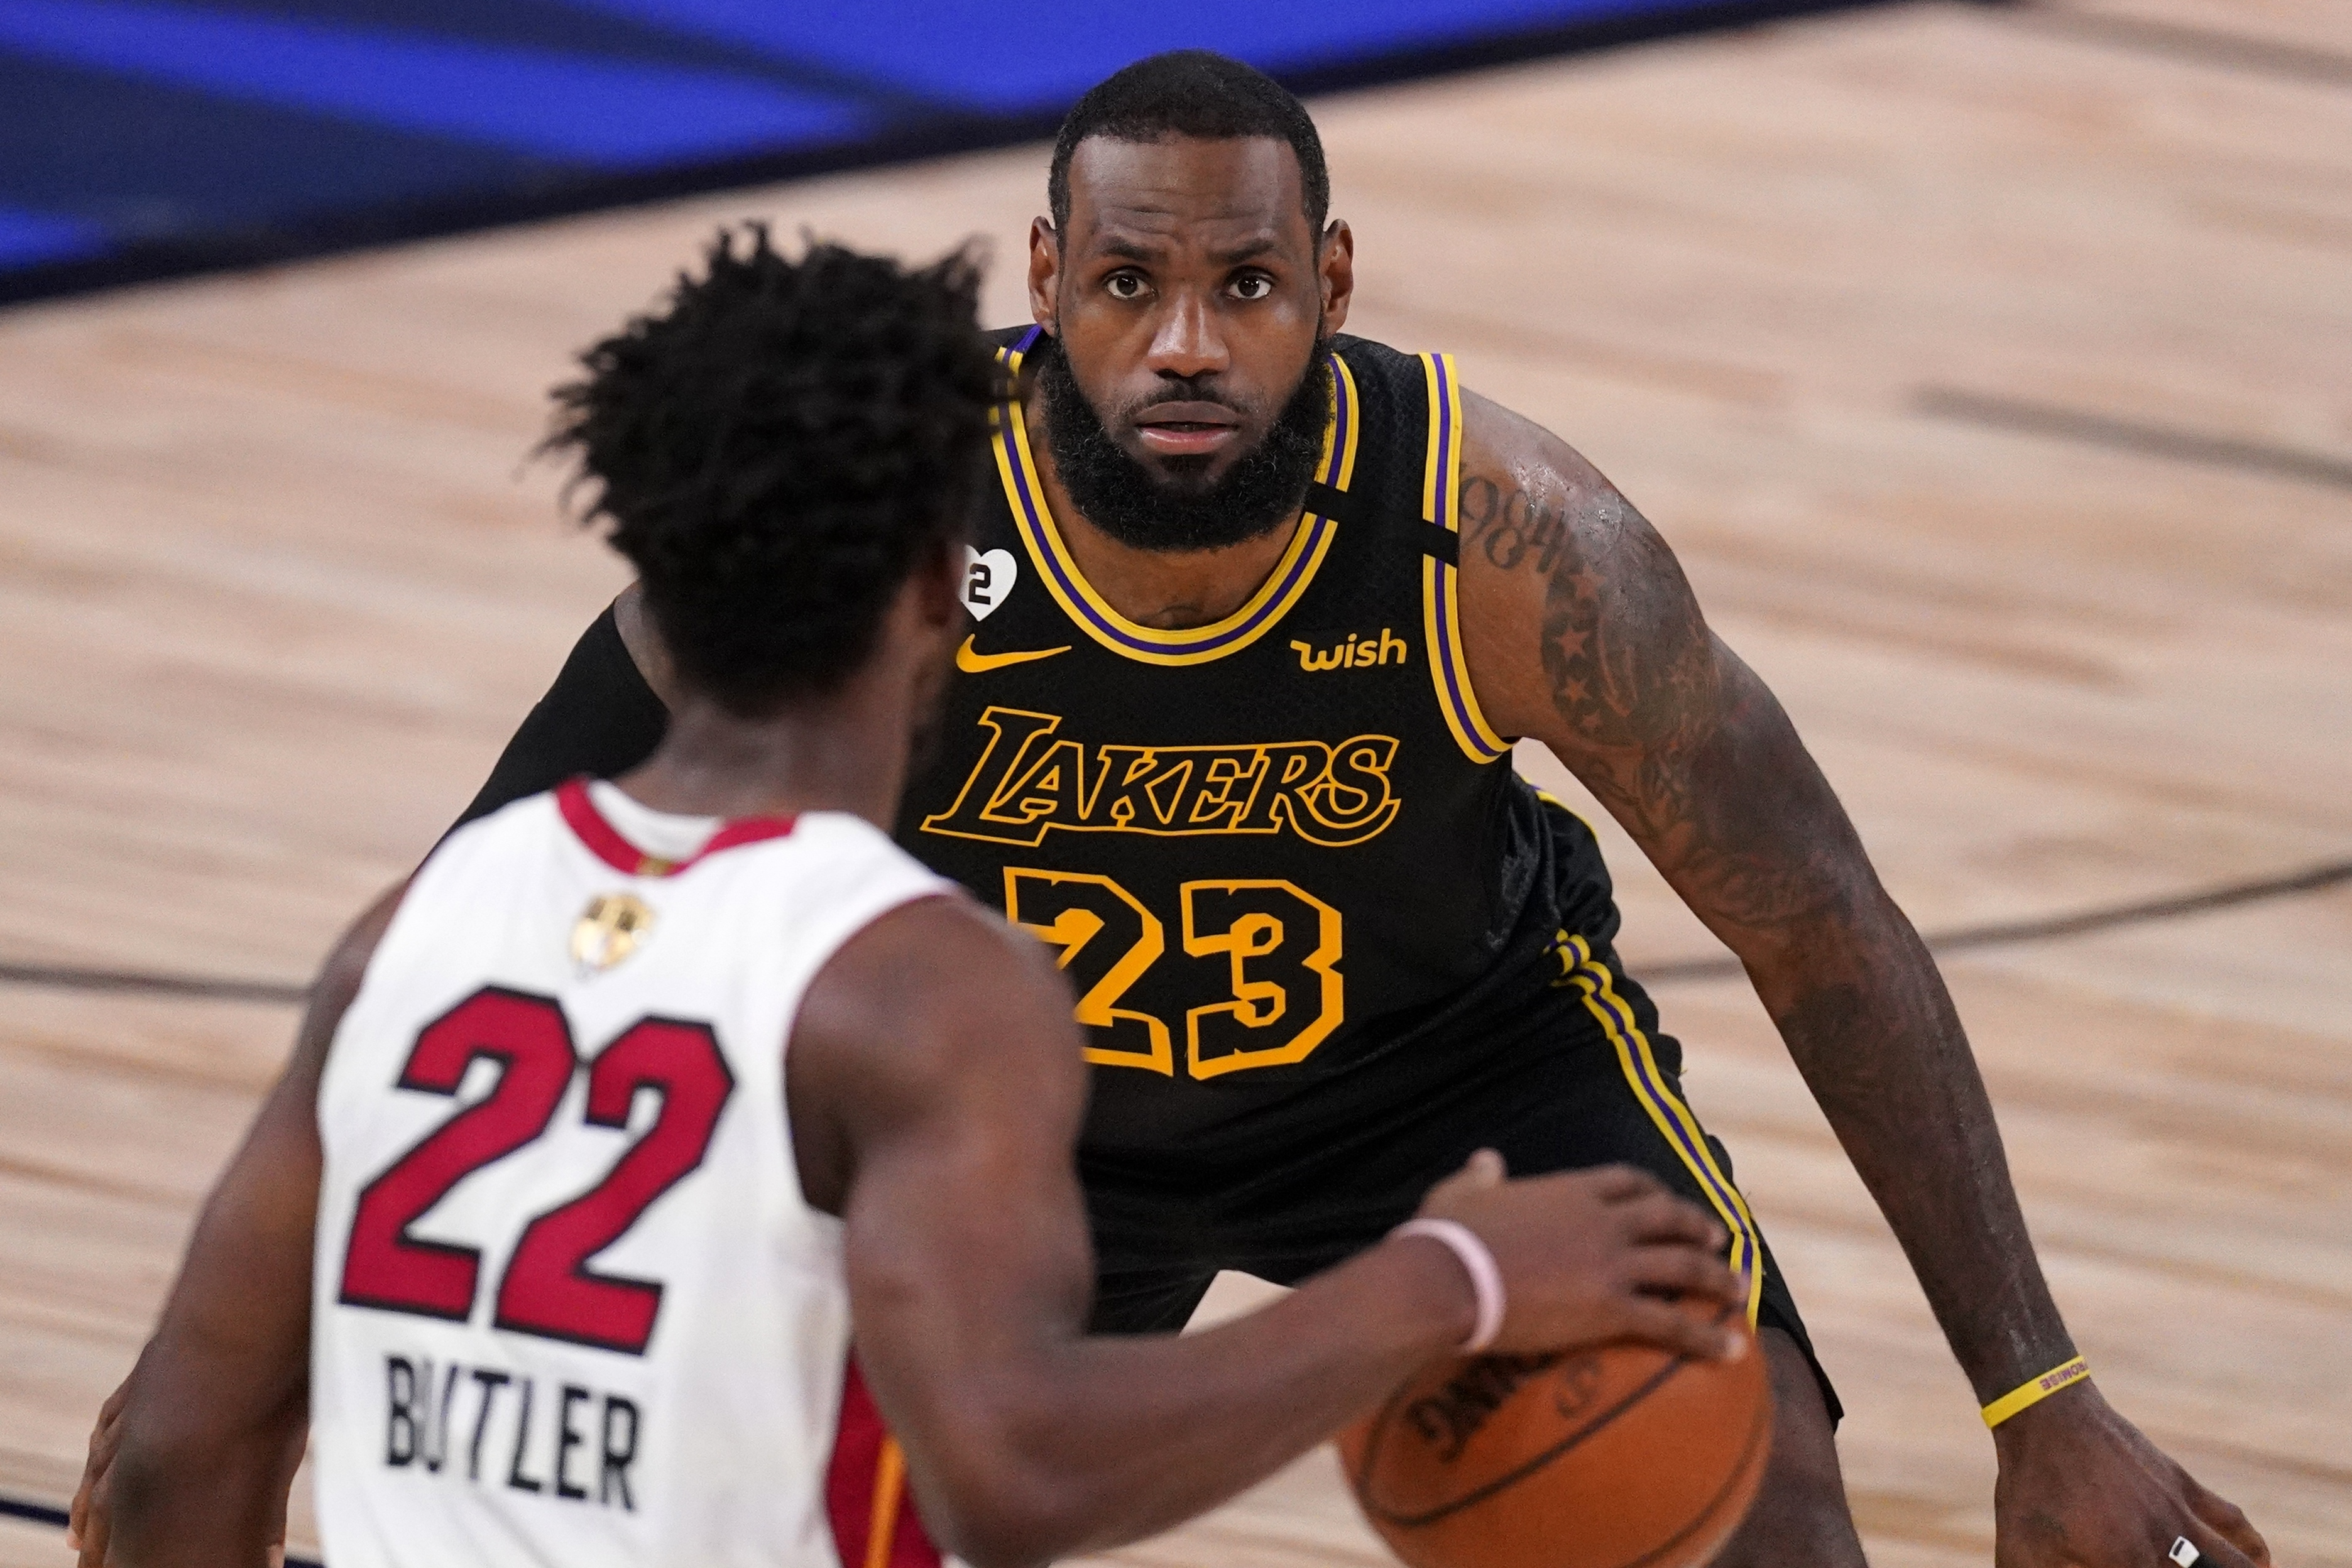 Los Angeles Lakers Vs Miami Heat Free Live Stream 10 6 20 How To Watch Nba Finals Game 4 Time Channel Odds Pennlive Com